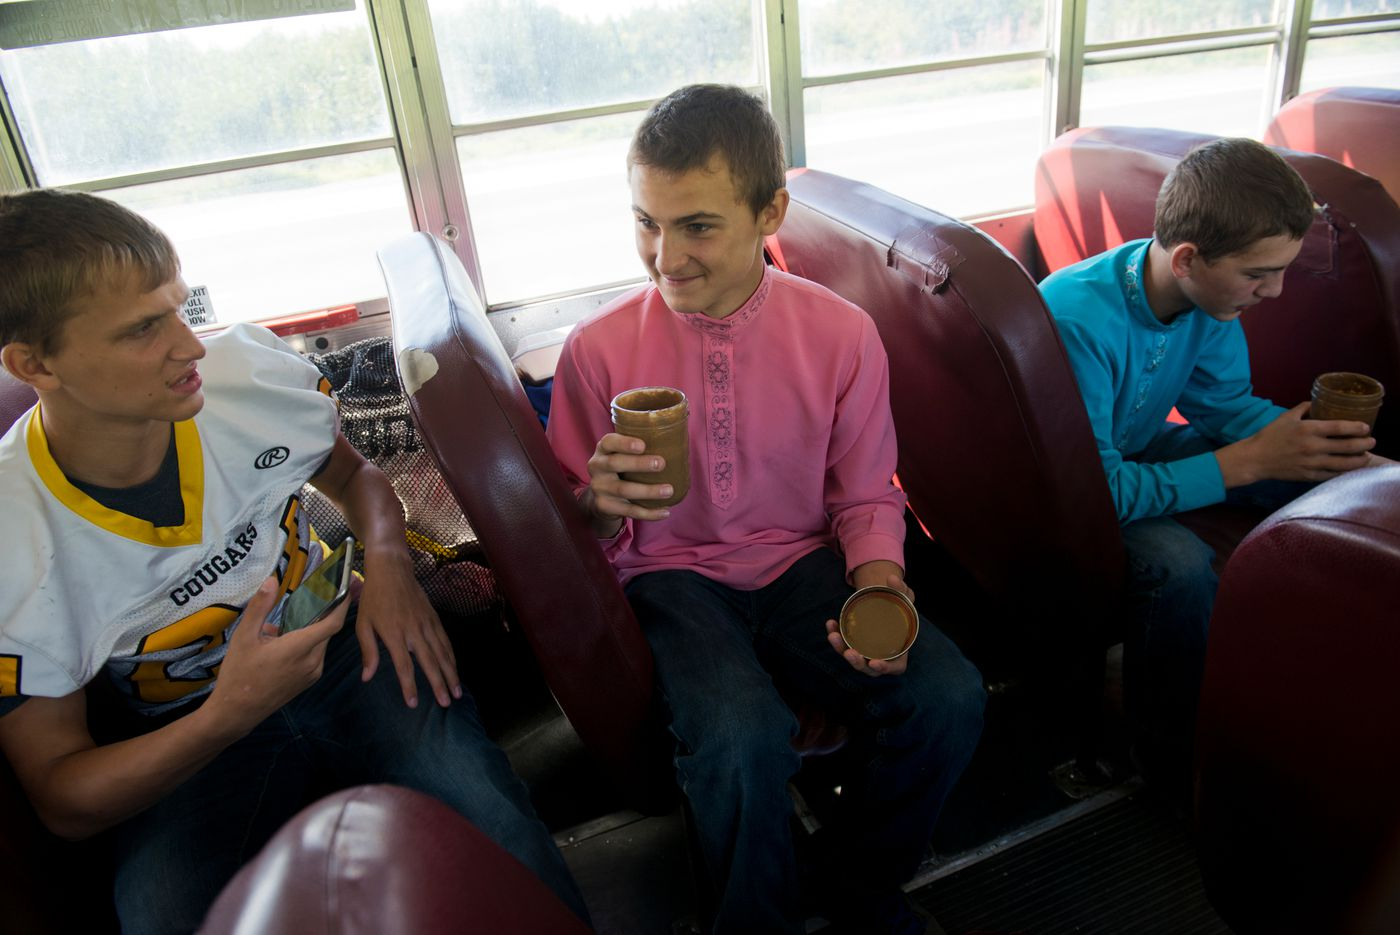 From left, Zasima Martushev, Kalinik Reutov and Jonah Reutov talk while they travel to an away football game on Friday, September 2, 2016. Coach Justin Zank said he's trying to teach the team about nutrition, and brought each player a smoothie to drink on the ride. (Marc Lester / Alaska Dispatch News)